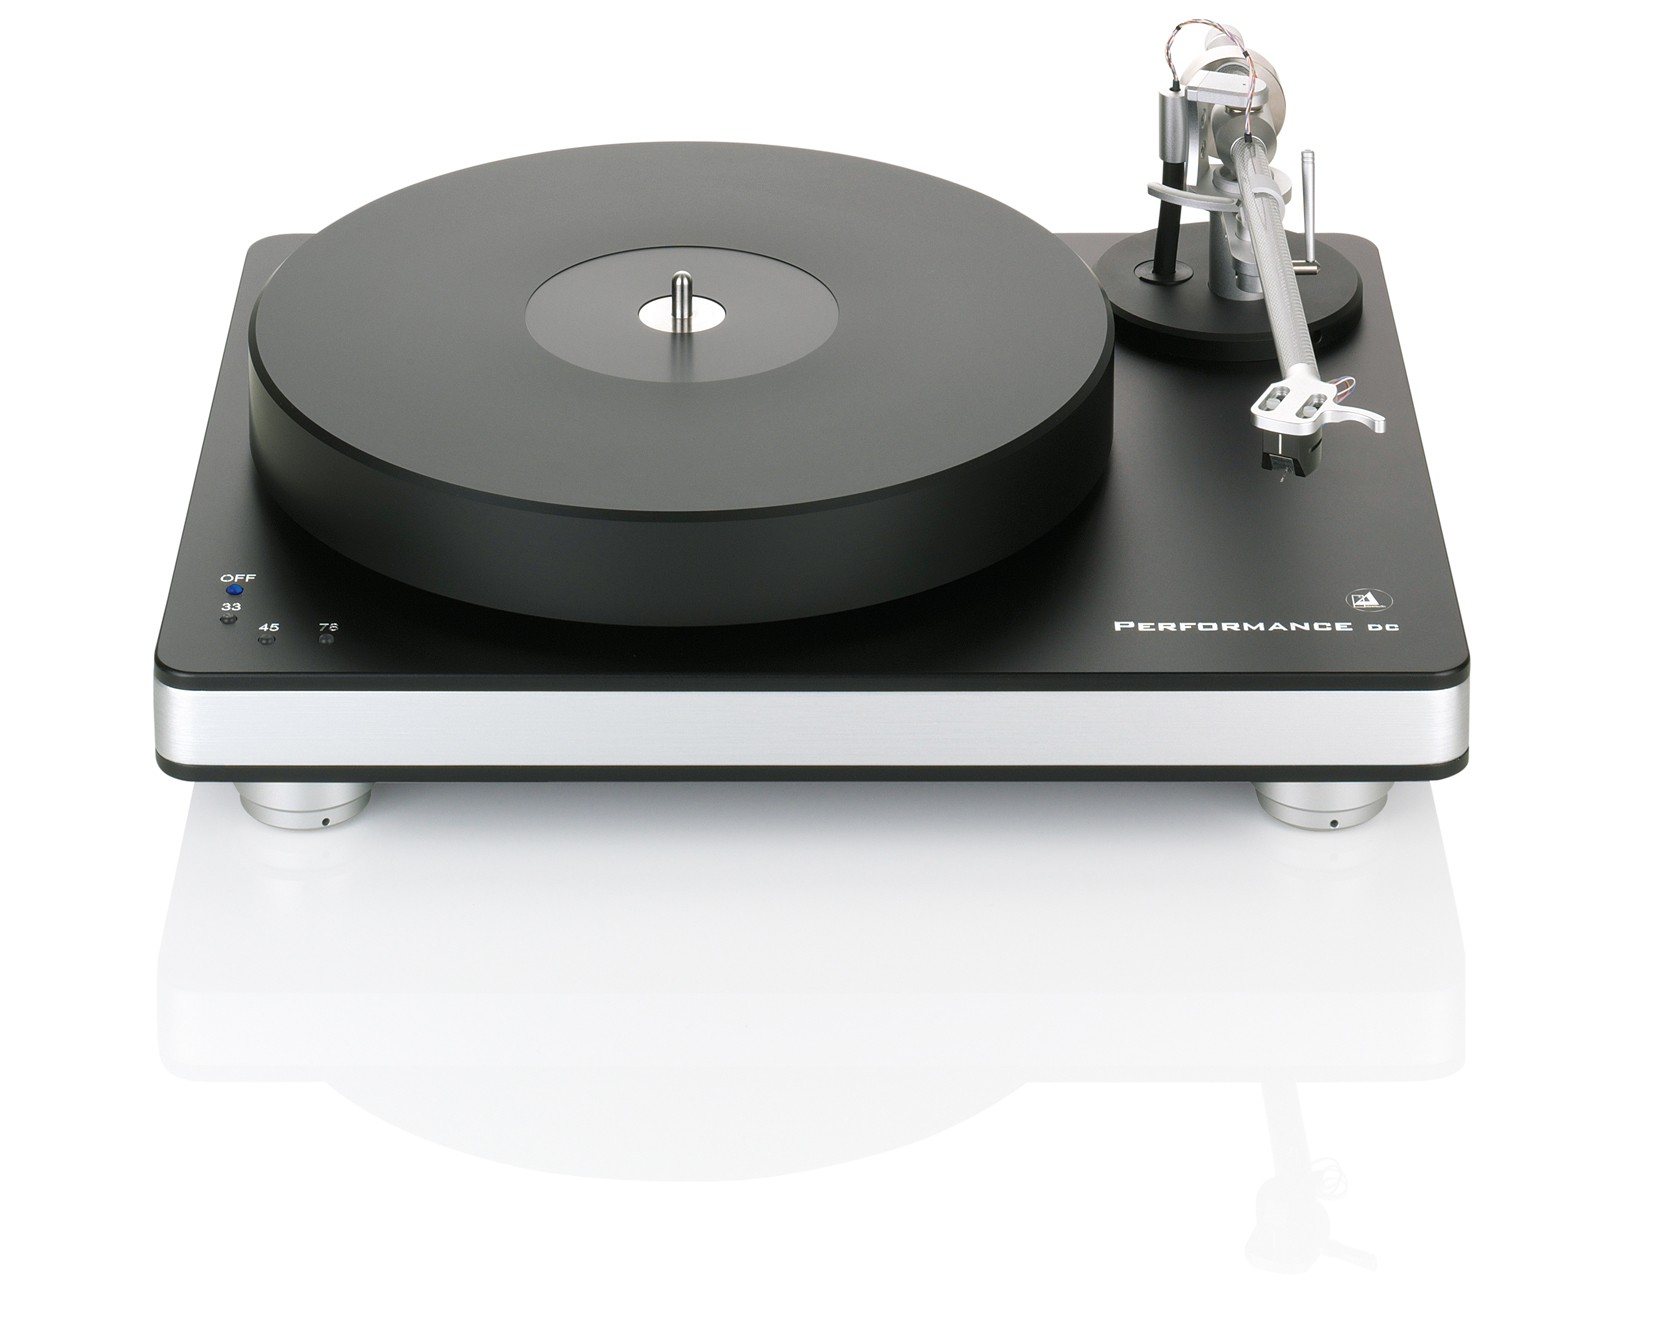 Clearaudio performance dc turntable package - Clearaudio Performance Dc Tt5 Essence Turntable Package